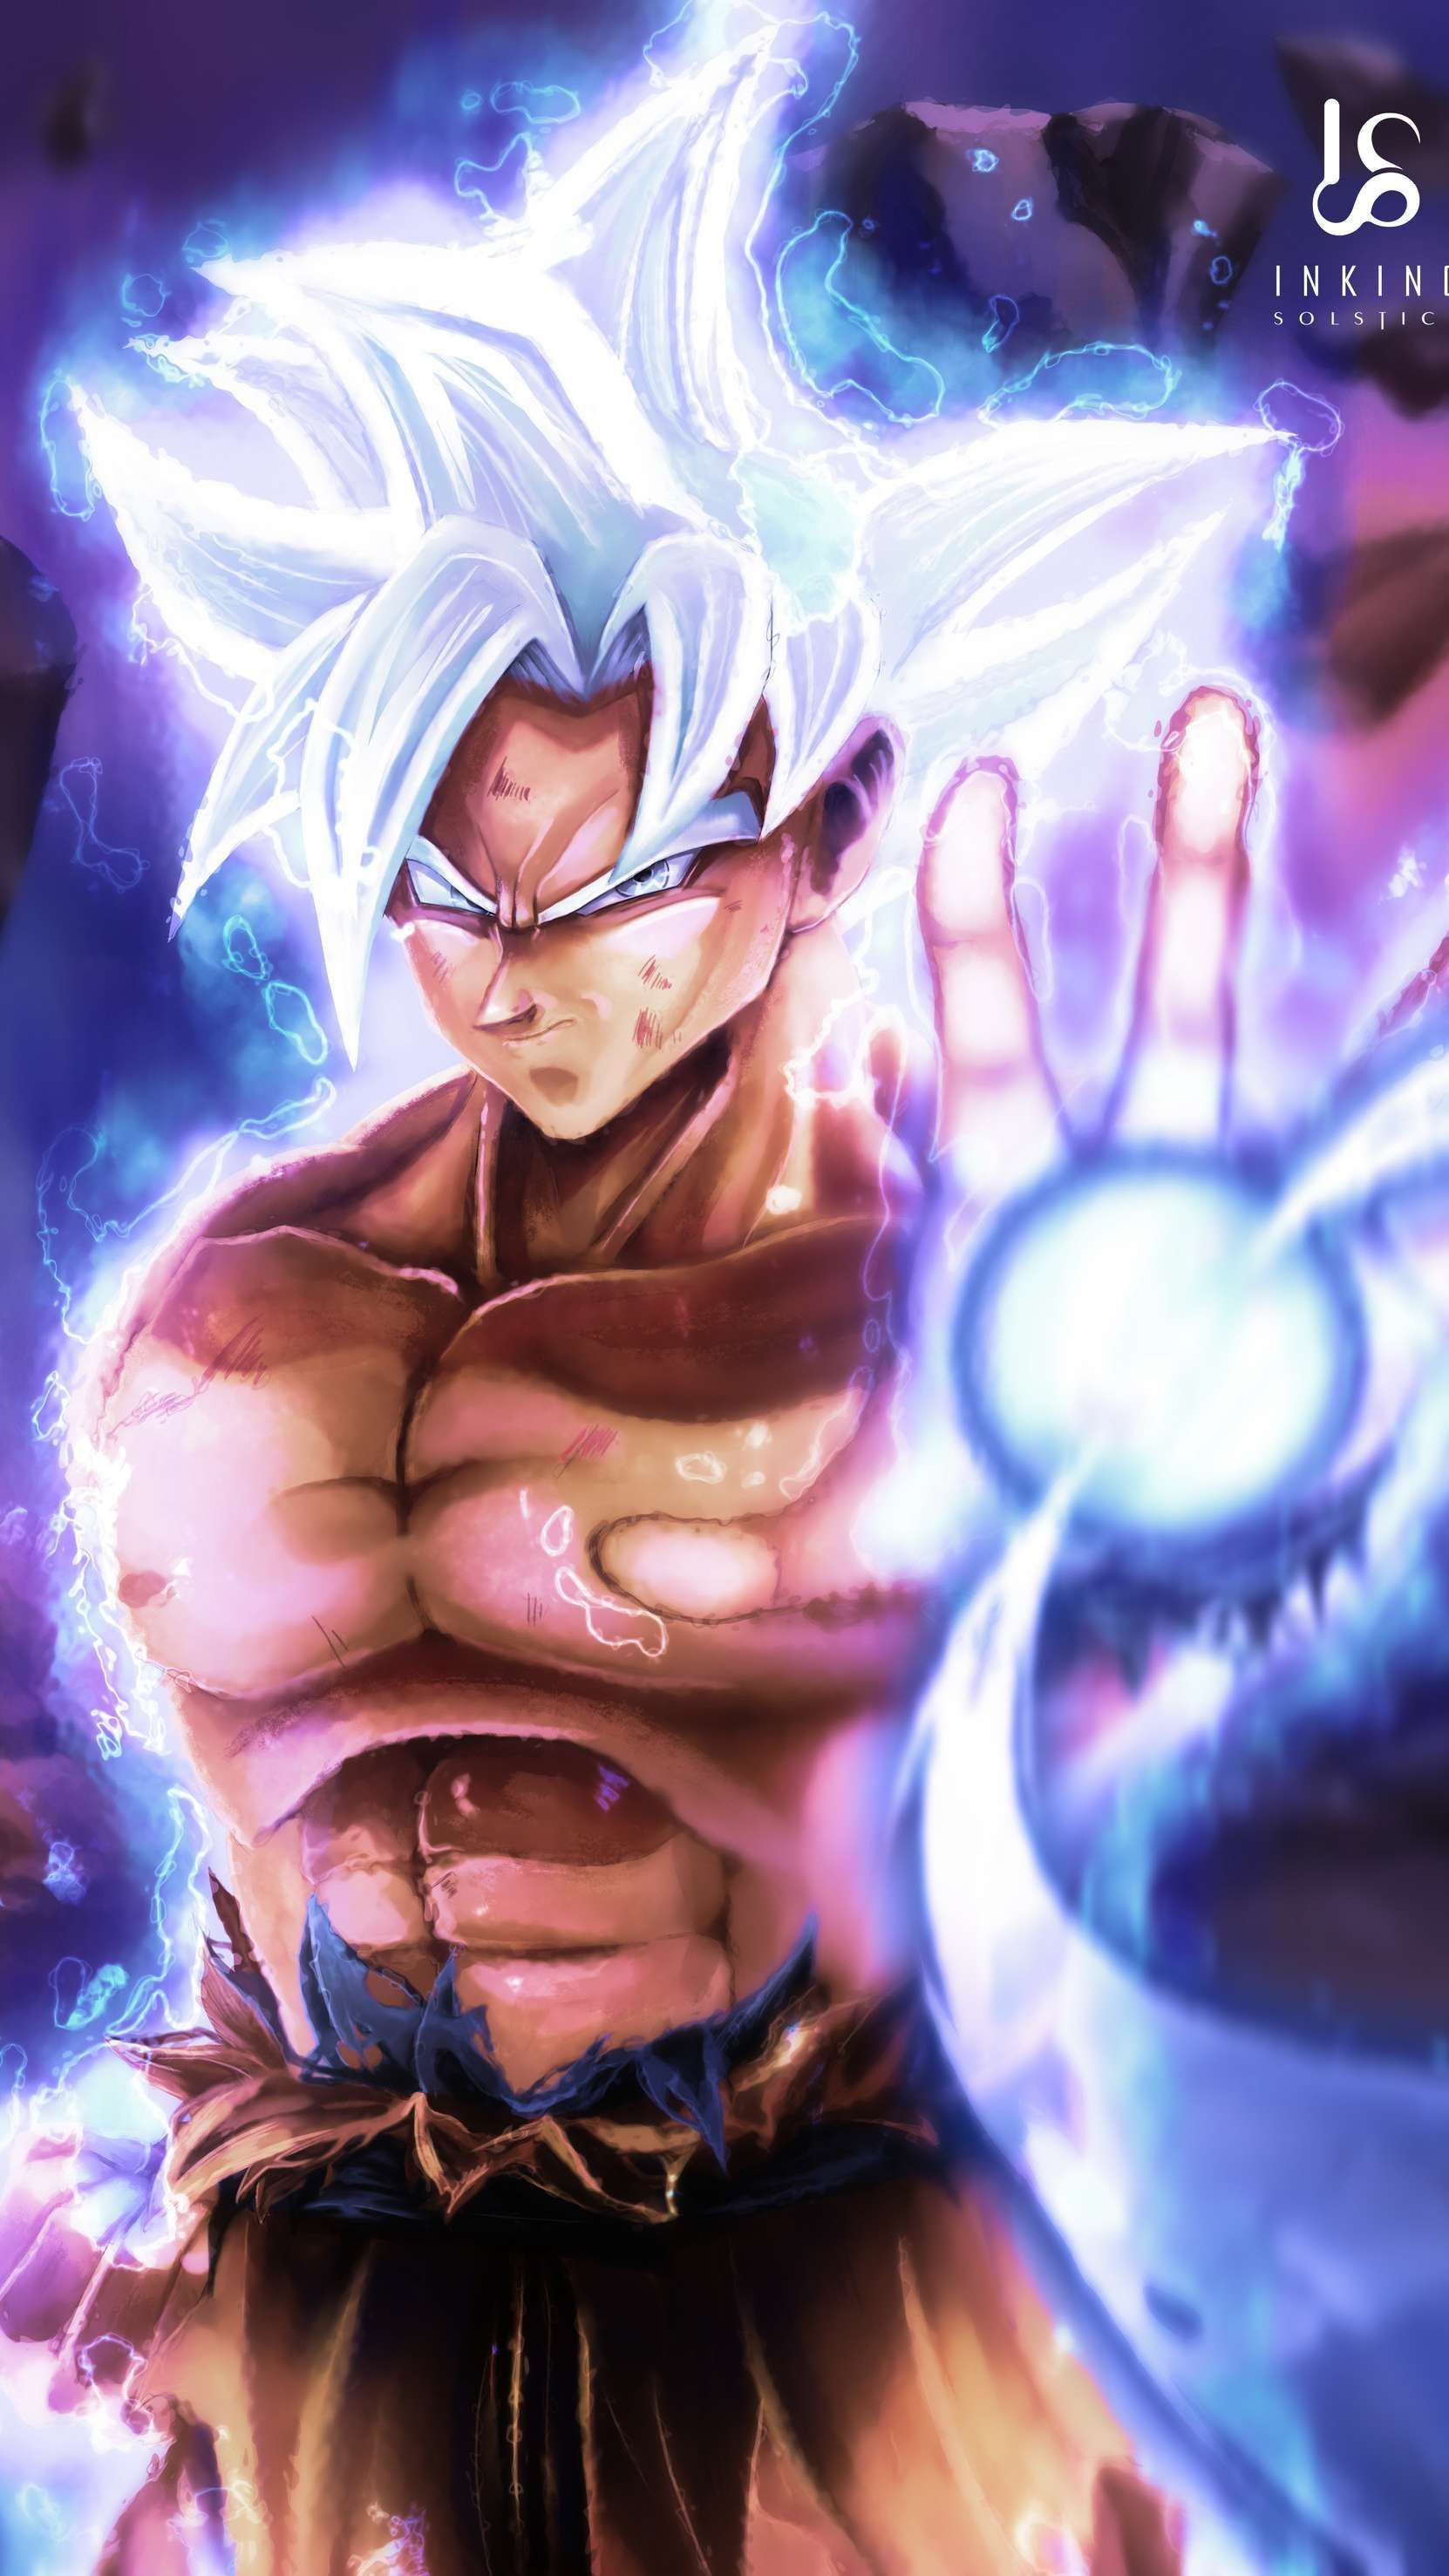 Download Cool Background For Iphone Xs Xs Max 2019 Goku Wallpaper Goku Wallpaper Iphone Anime Dragon Ball Super